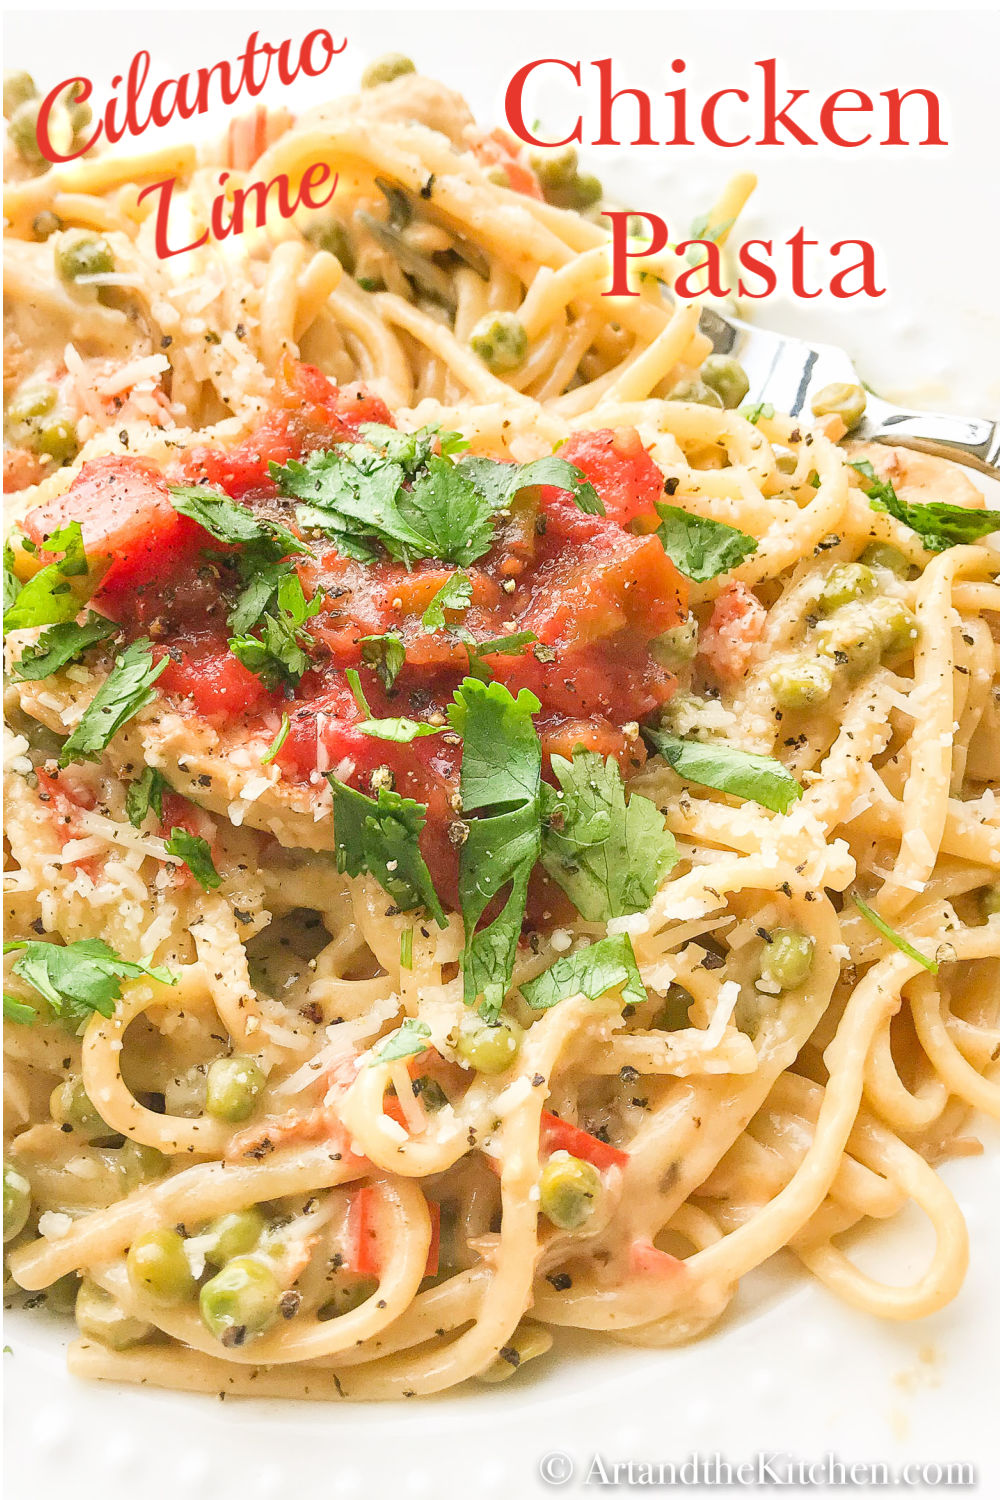 Cilantro Lime Chicken Pasta is bursting with flavour. Flavorful combination of cilantro, lime and Alfredo sauce via @artandthekitch